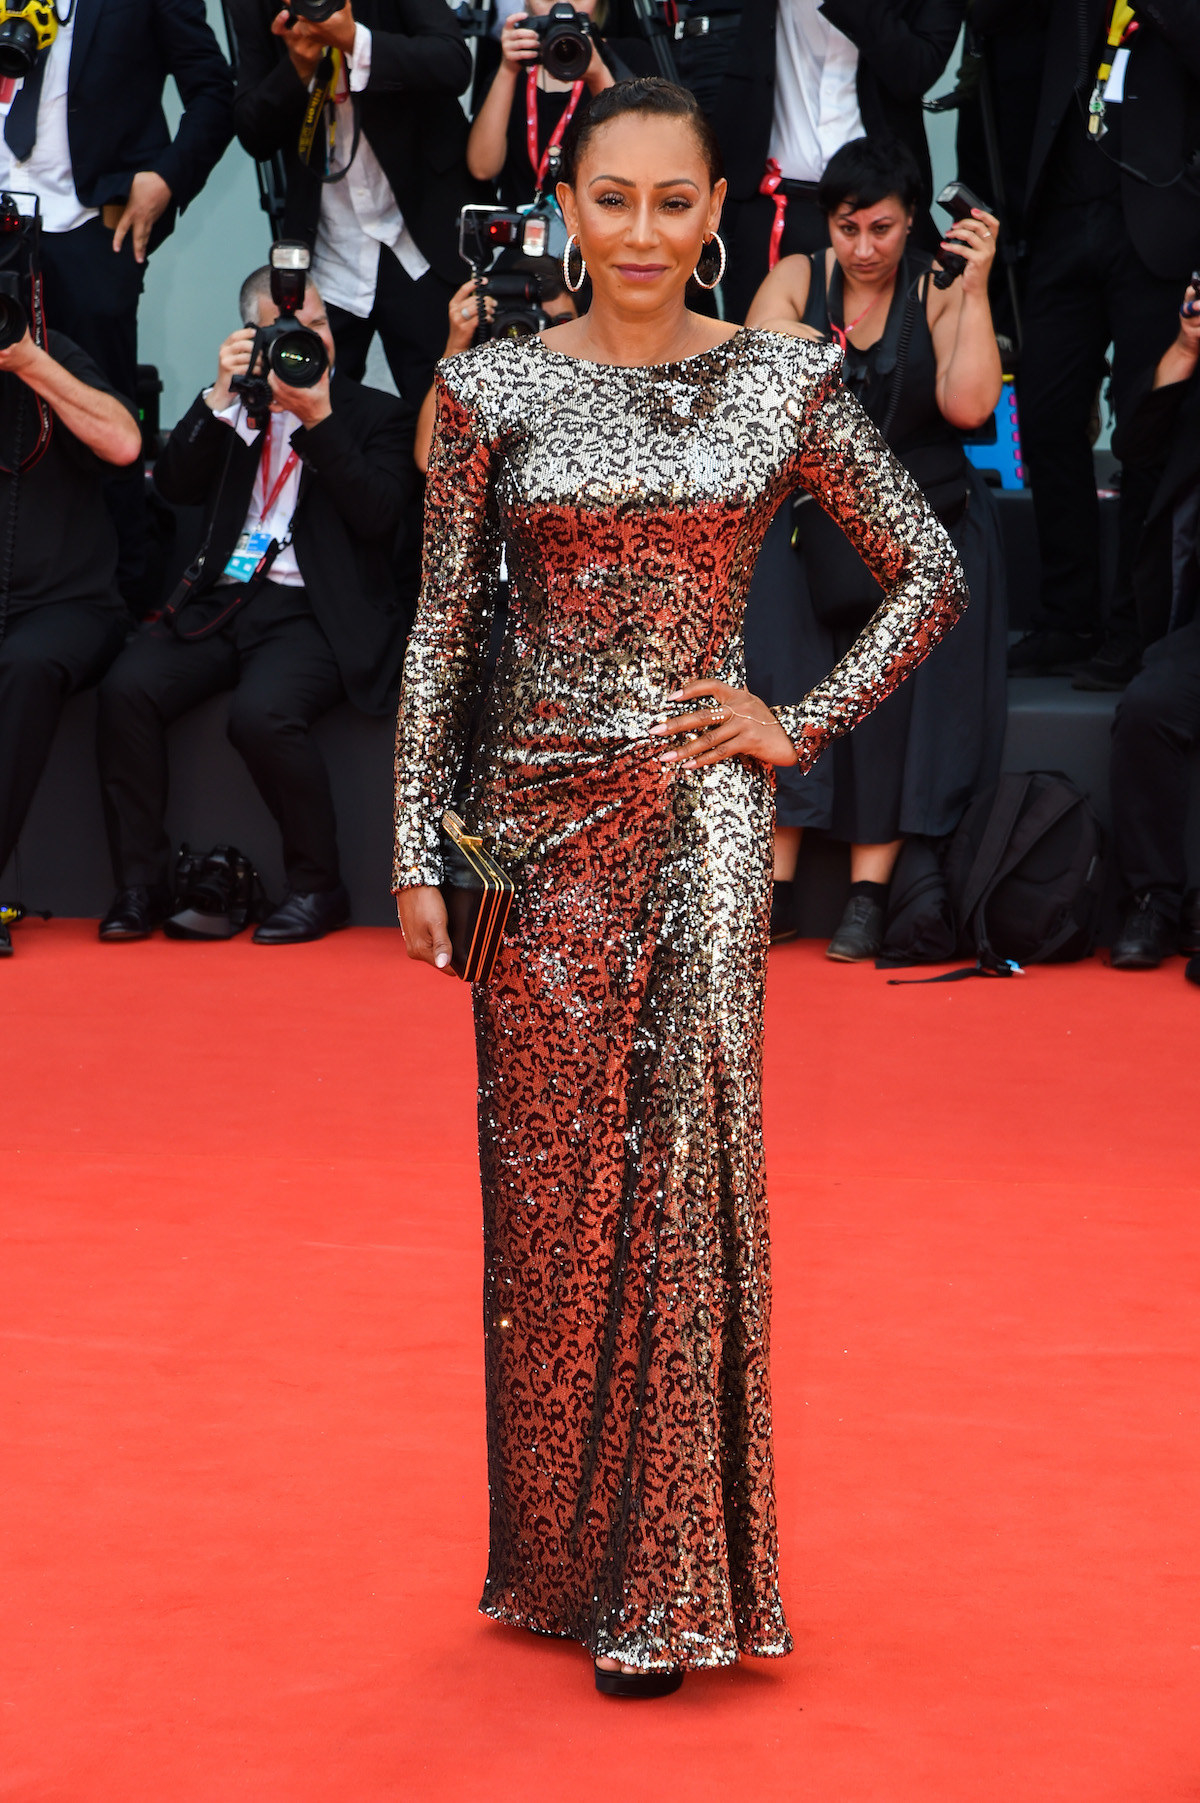 Melanie Brown walks the red carpet ahead of the opening ceremony during the 76th Venice Film Festival